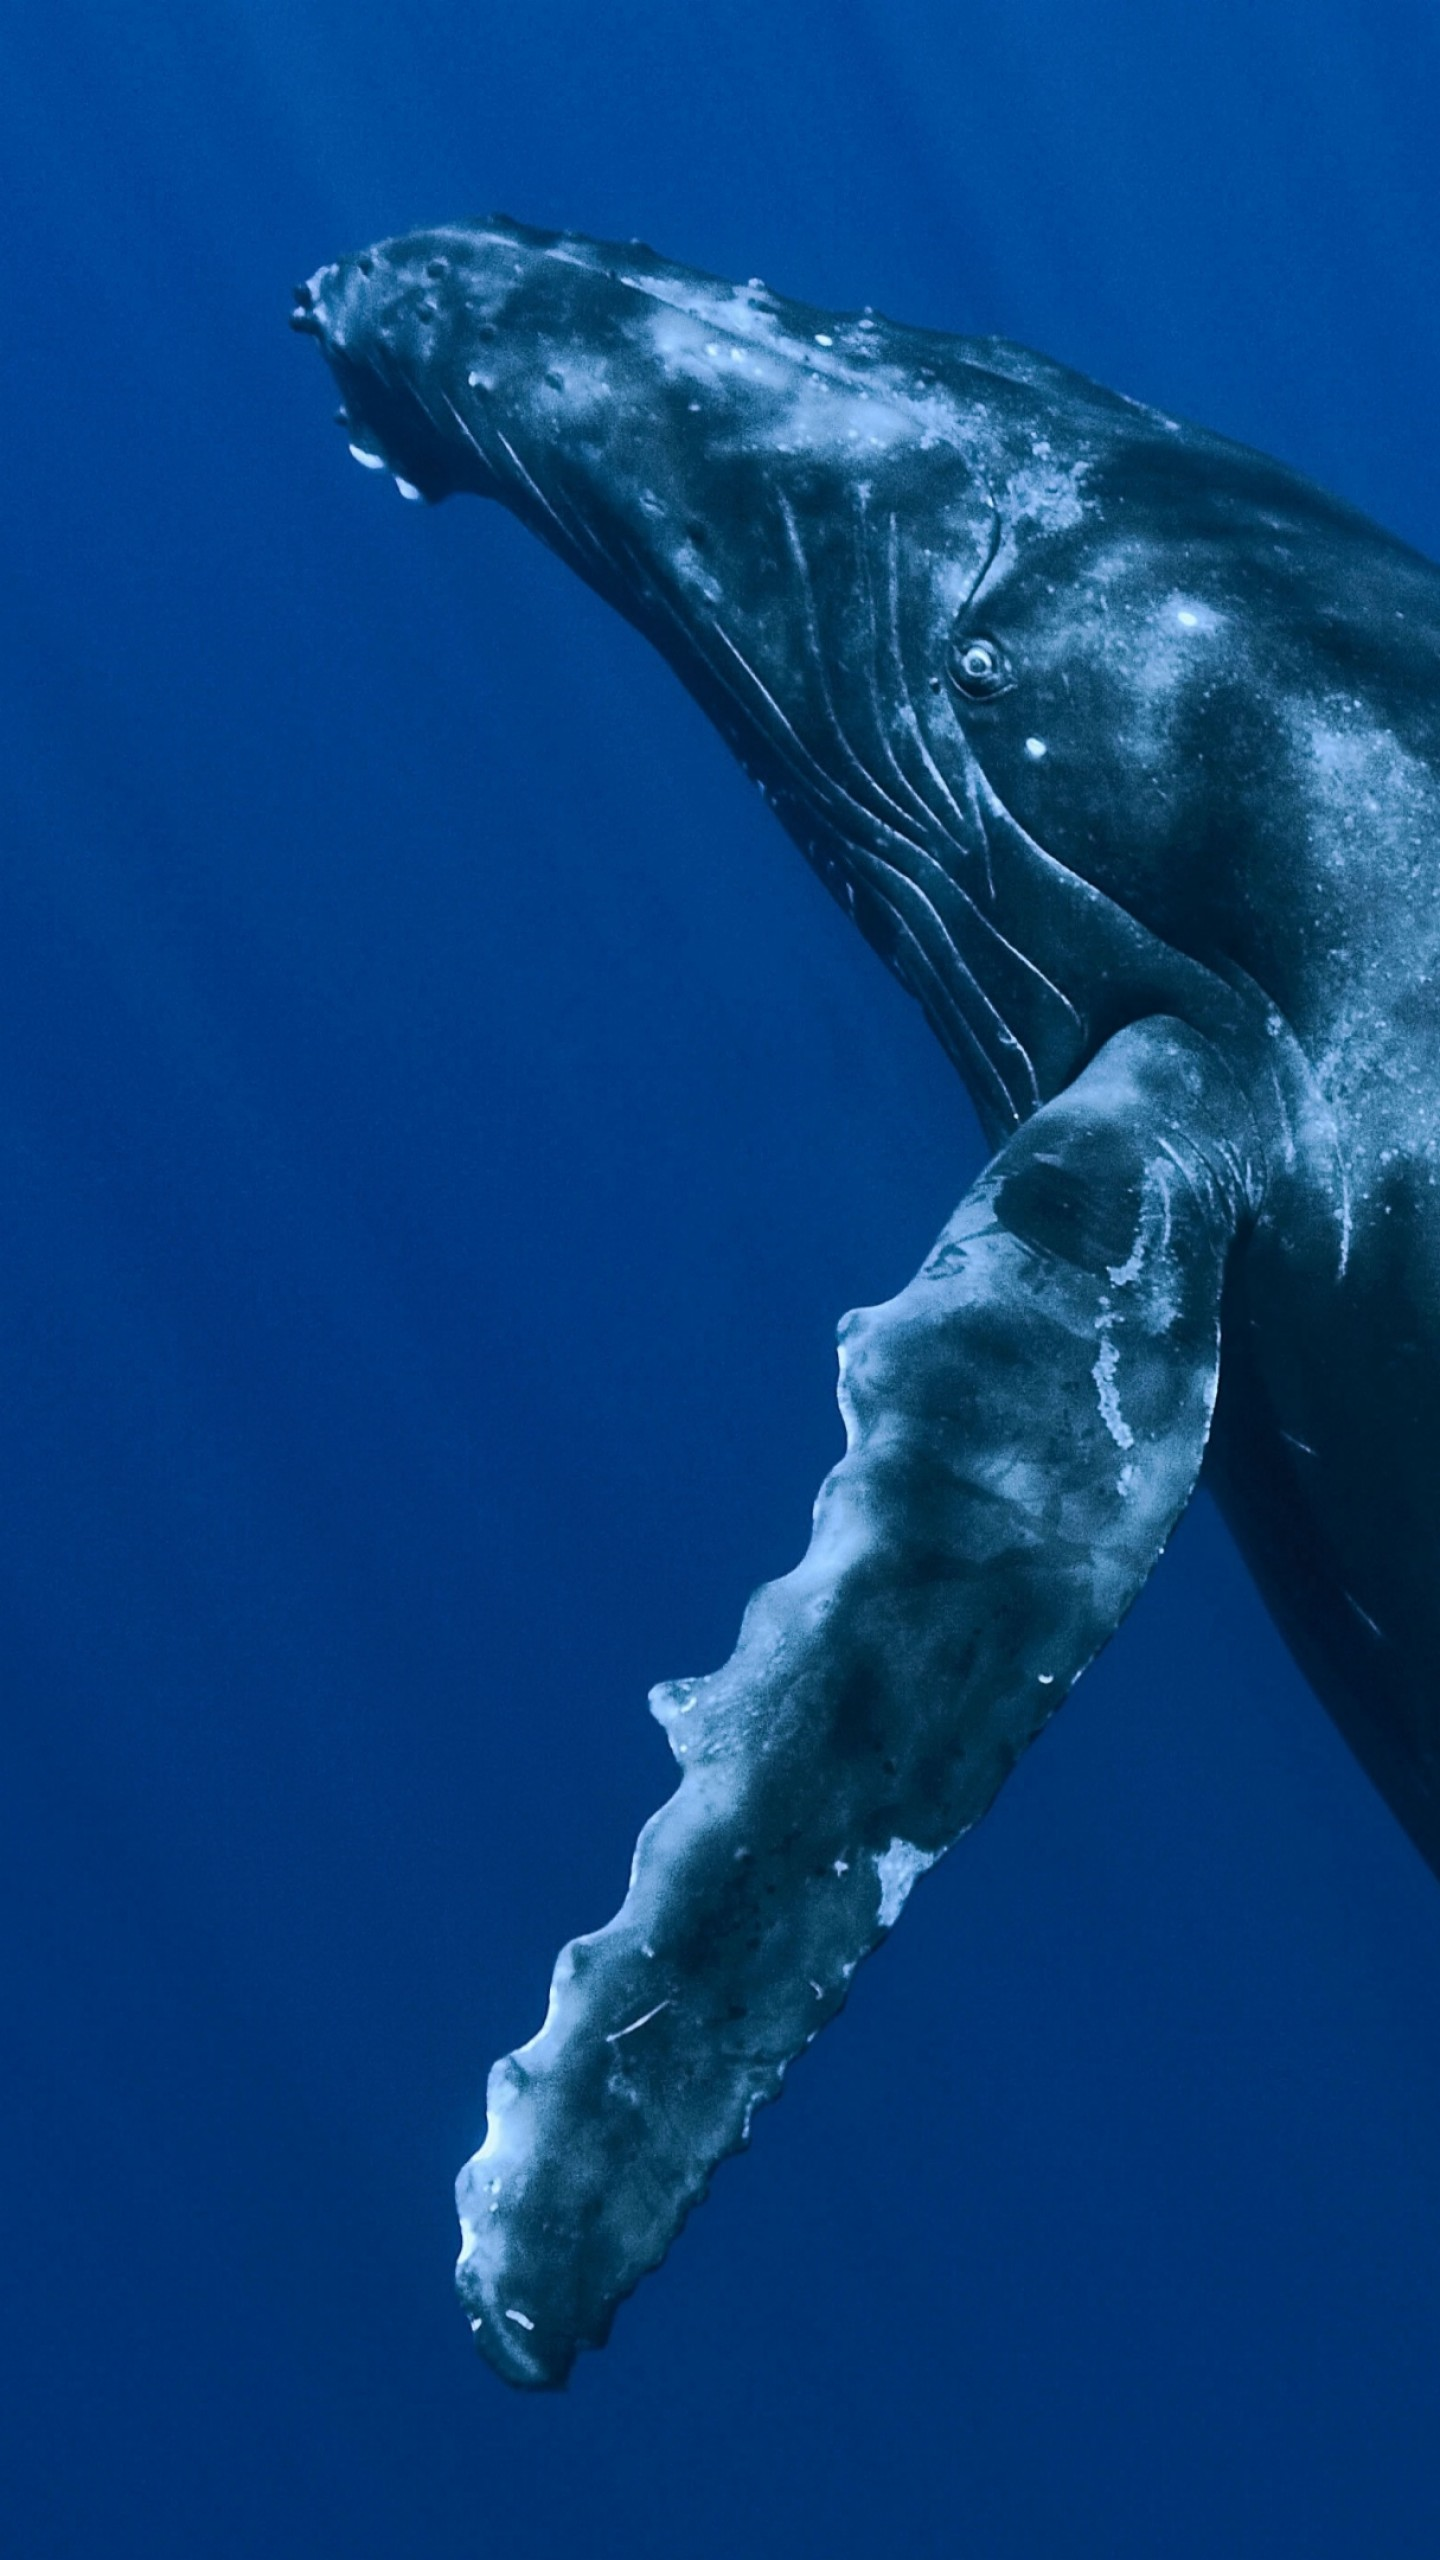 Wallpaper whale underwater best diving sites animals 5383 - Wallpapers sites list ...